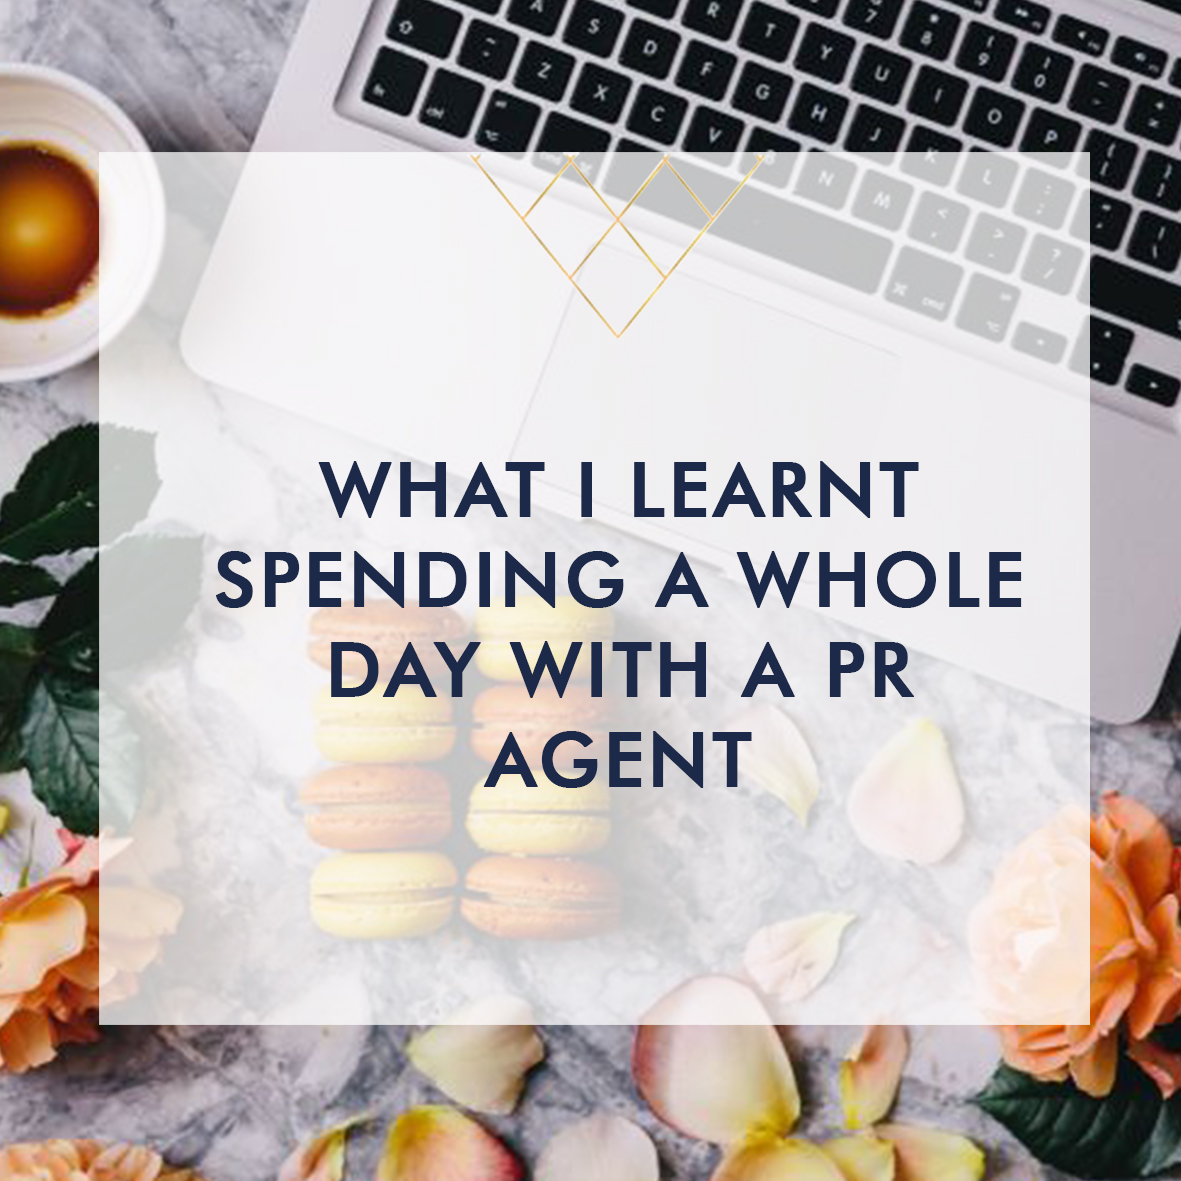 What I Learnt Spending A Whole Day With A PR Agent  2